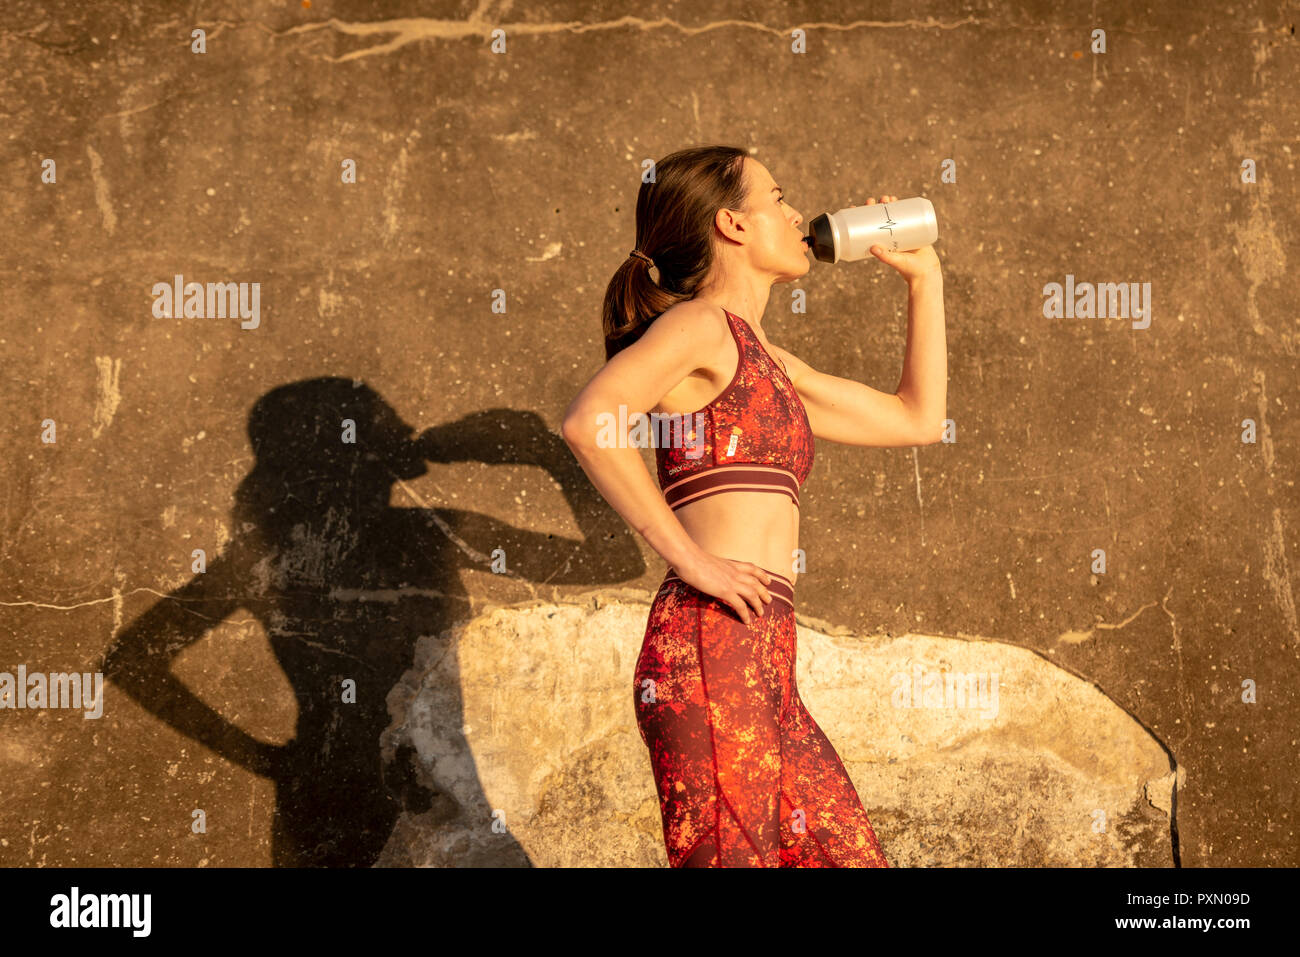 sportswoman drinking water from a bottle in the sun - Stock Image